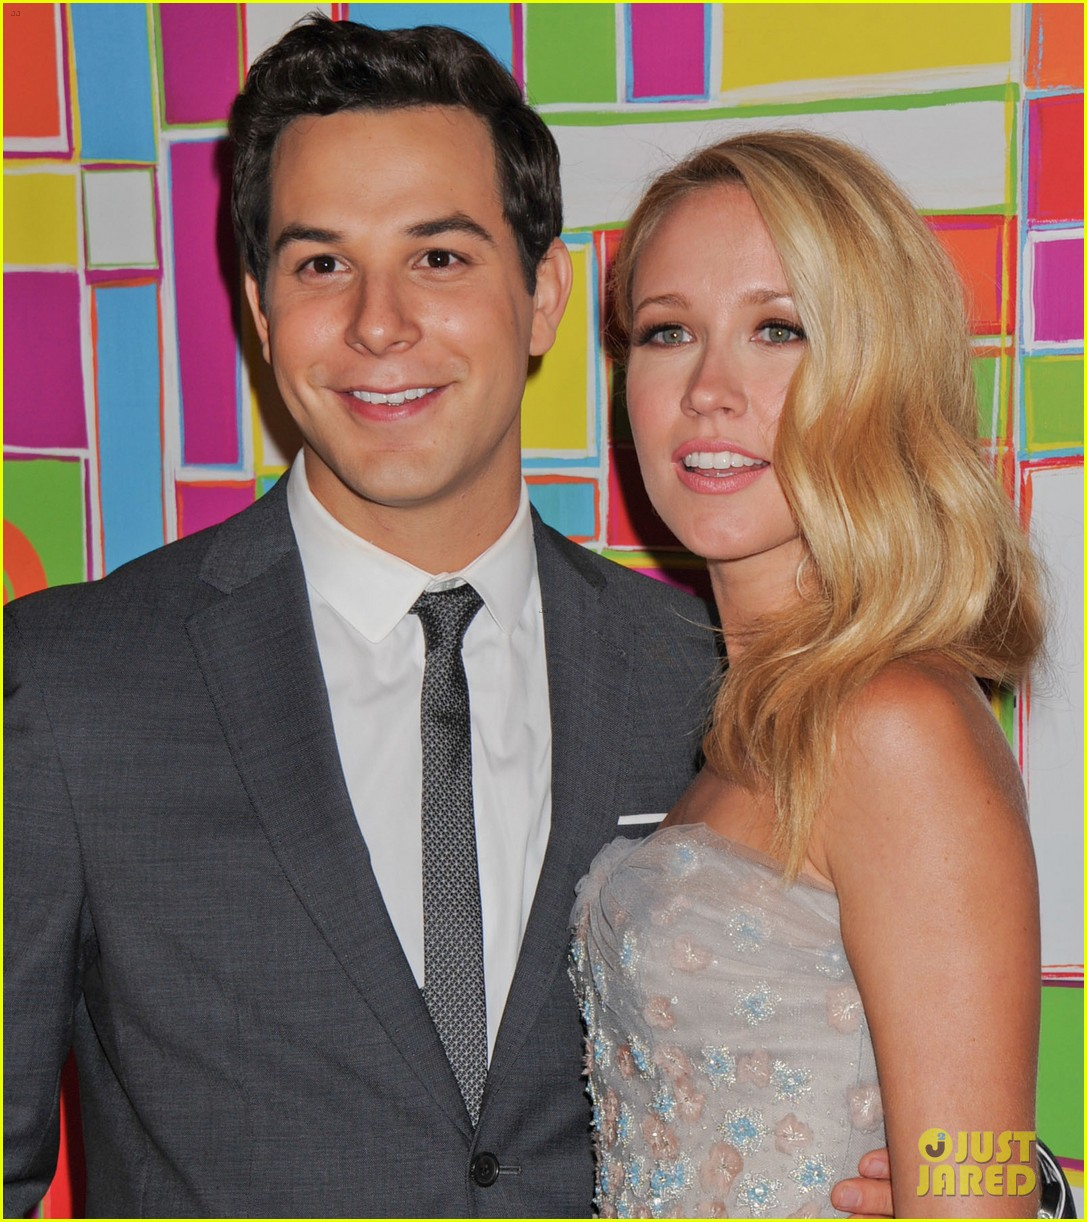 anna camp skylar astin are picture perfect duo at hbos emmys 083184047